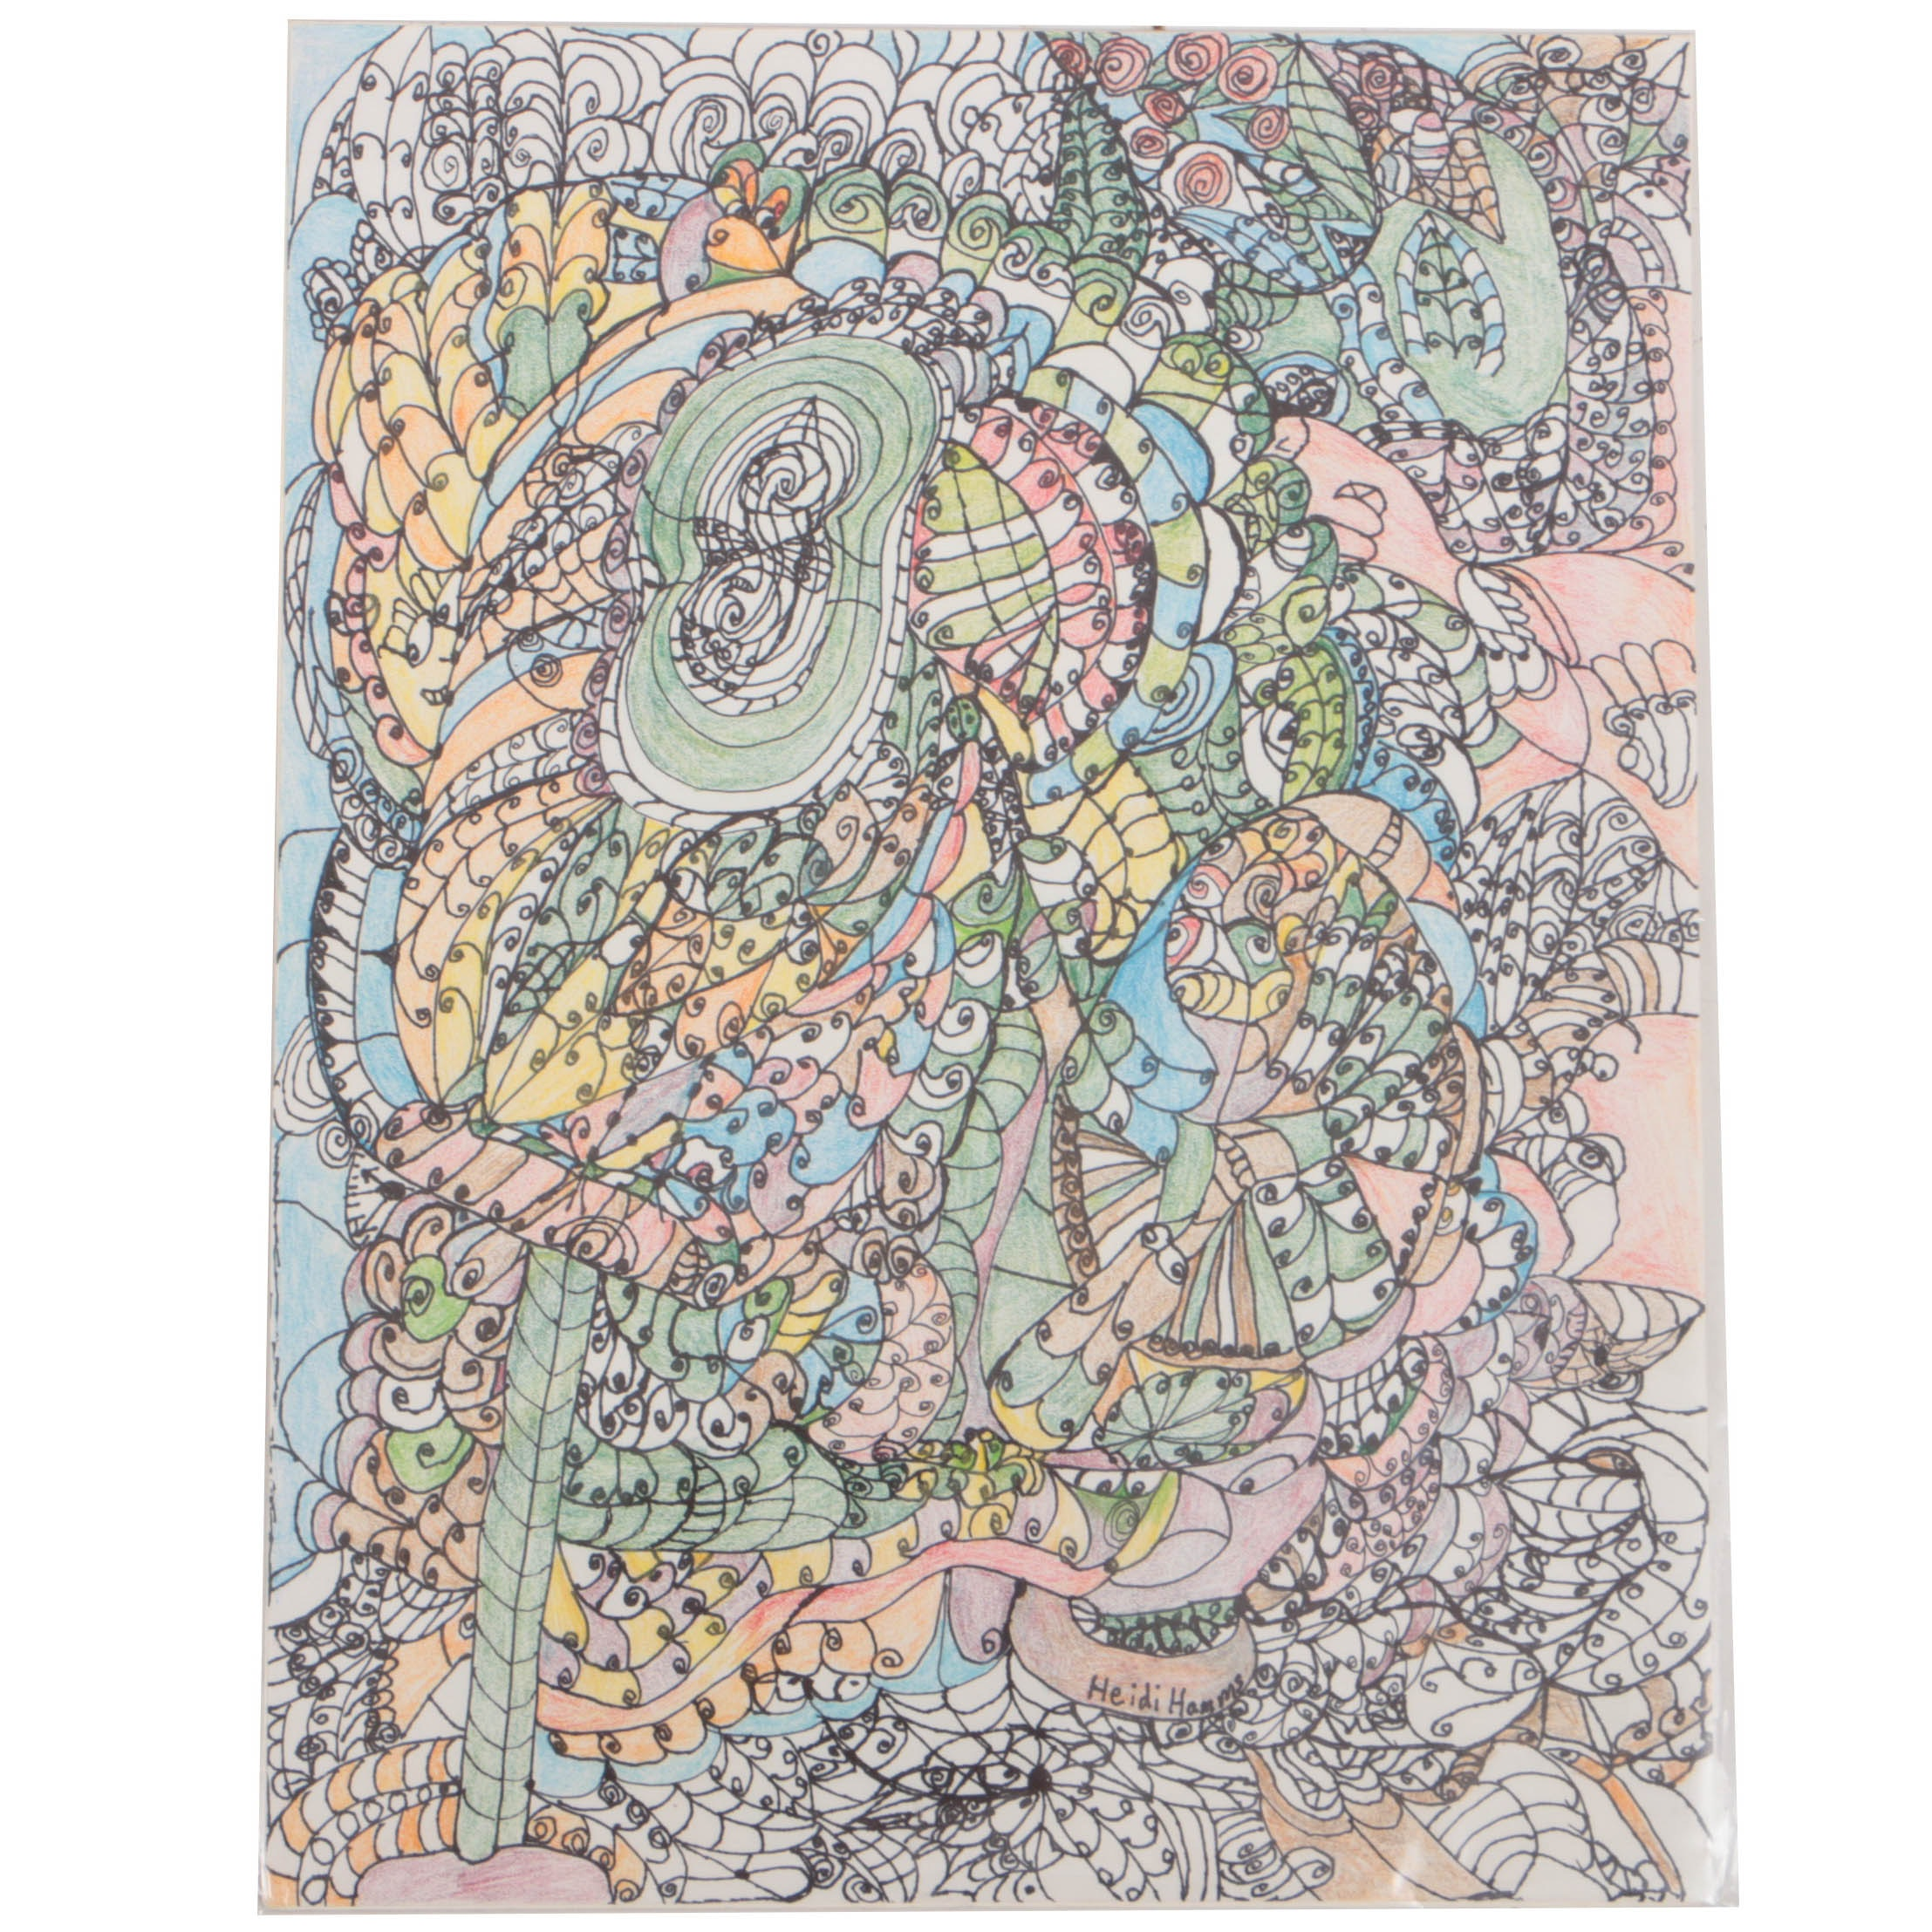 """Heidi Hamms 2015 Ink and Colored Pencil Drawing on Paper """"Festival"""""""